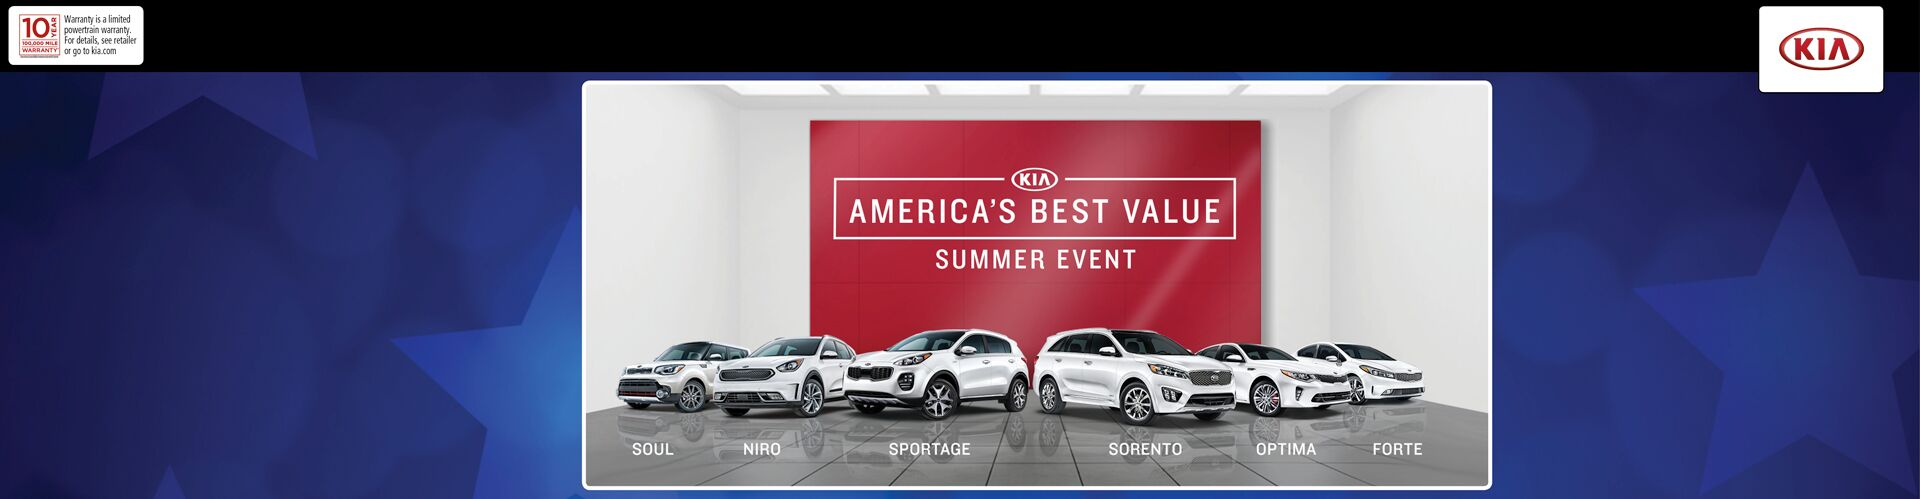 KIA - America's Best Savings!